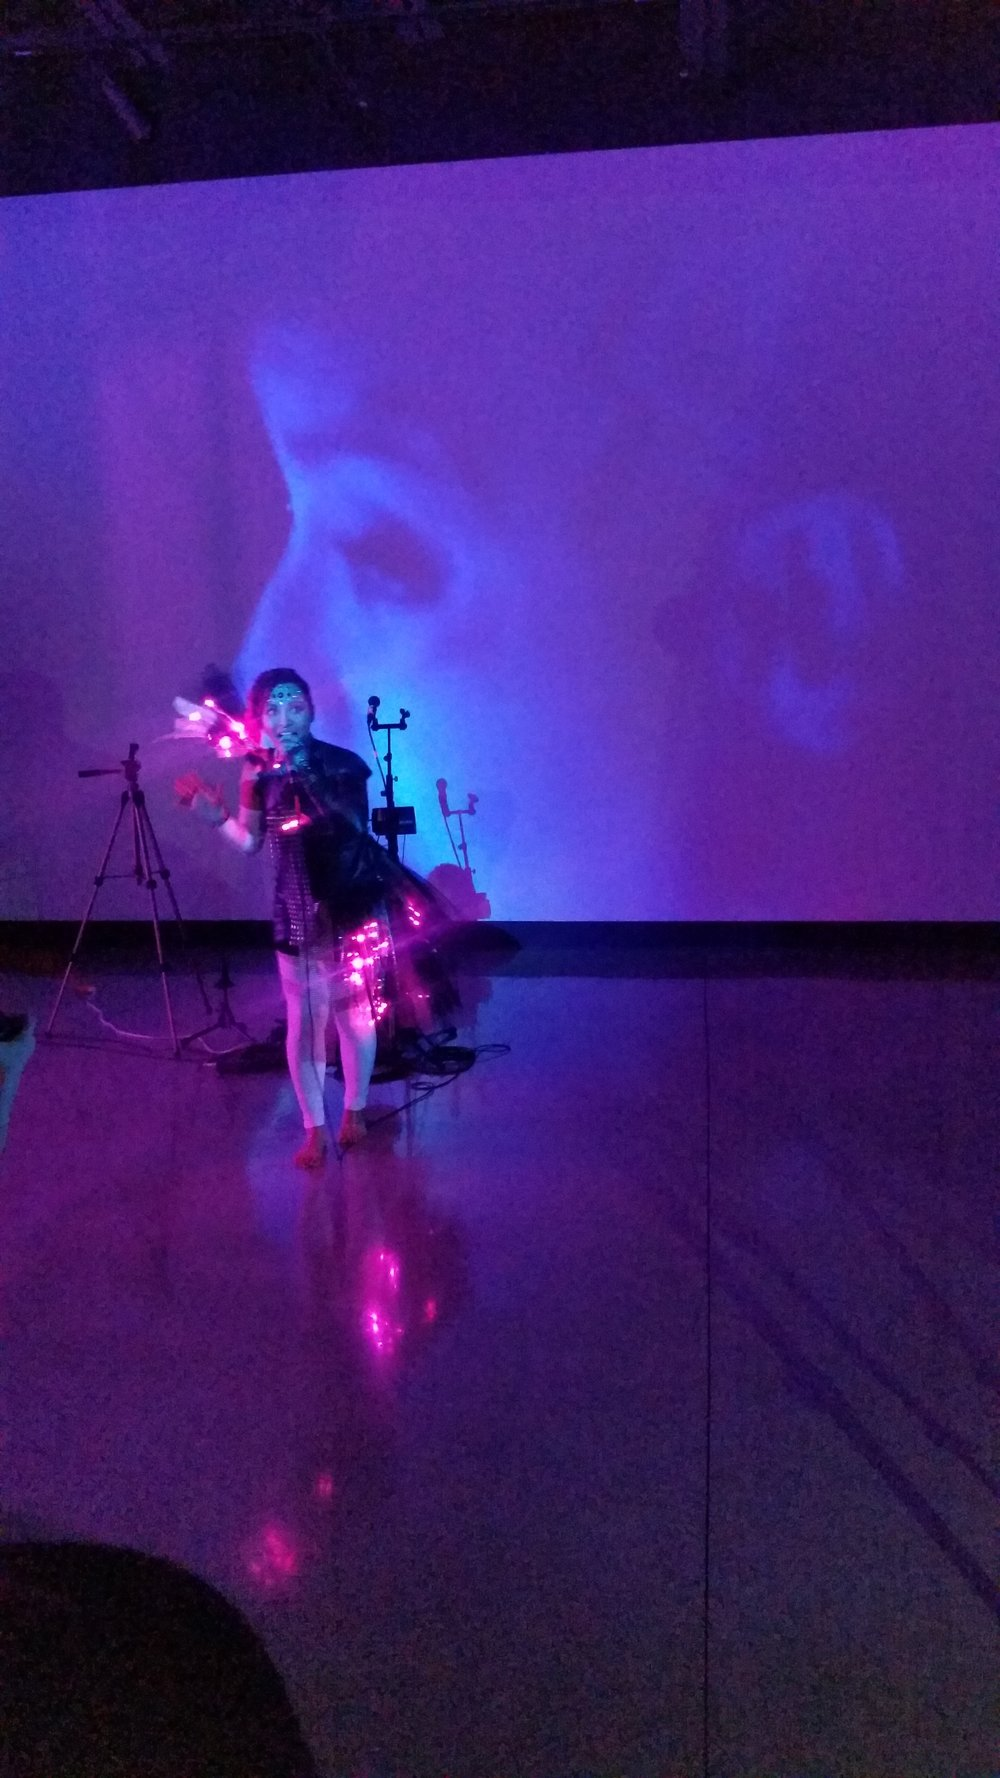 Charlena Russell's debut performance of her sound activated light suit. This was an amazing performance that included gorgeous visuals on screen.